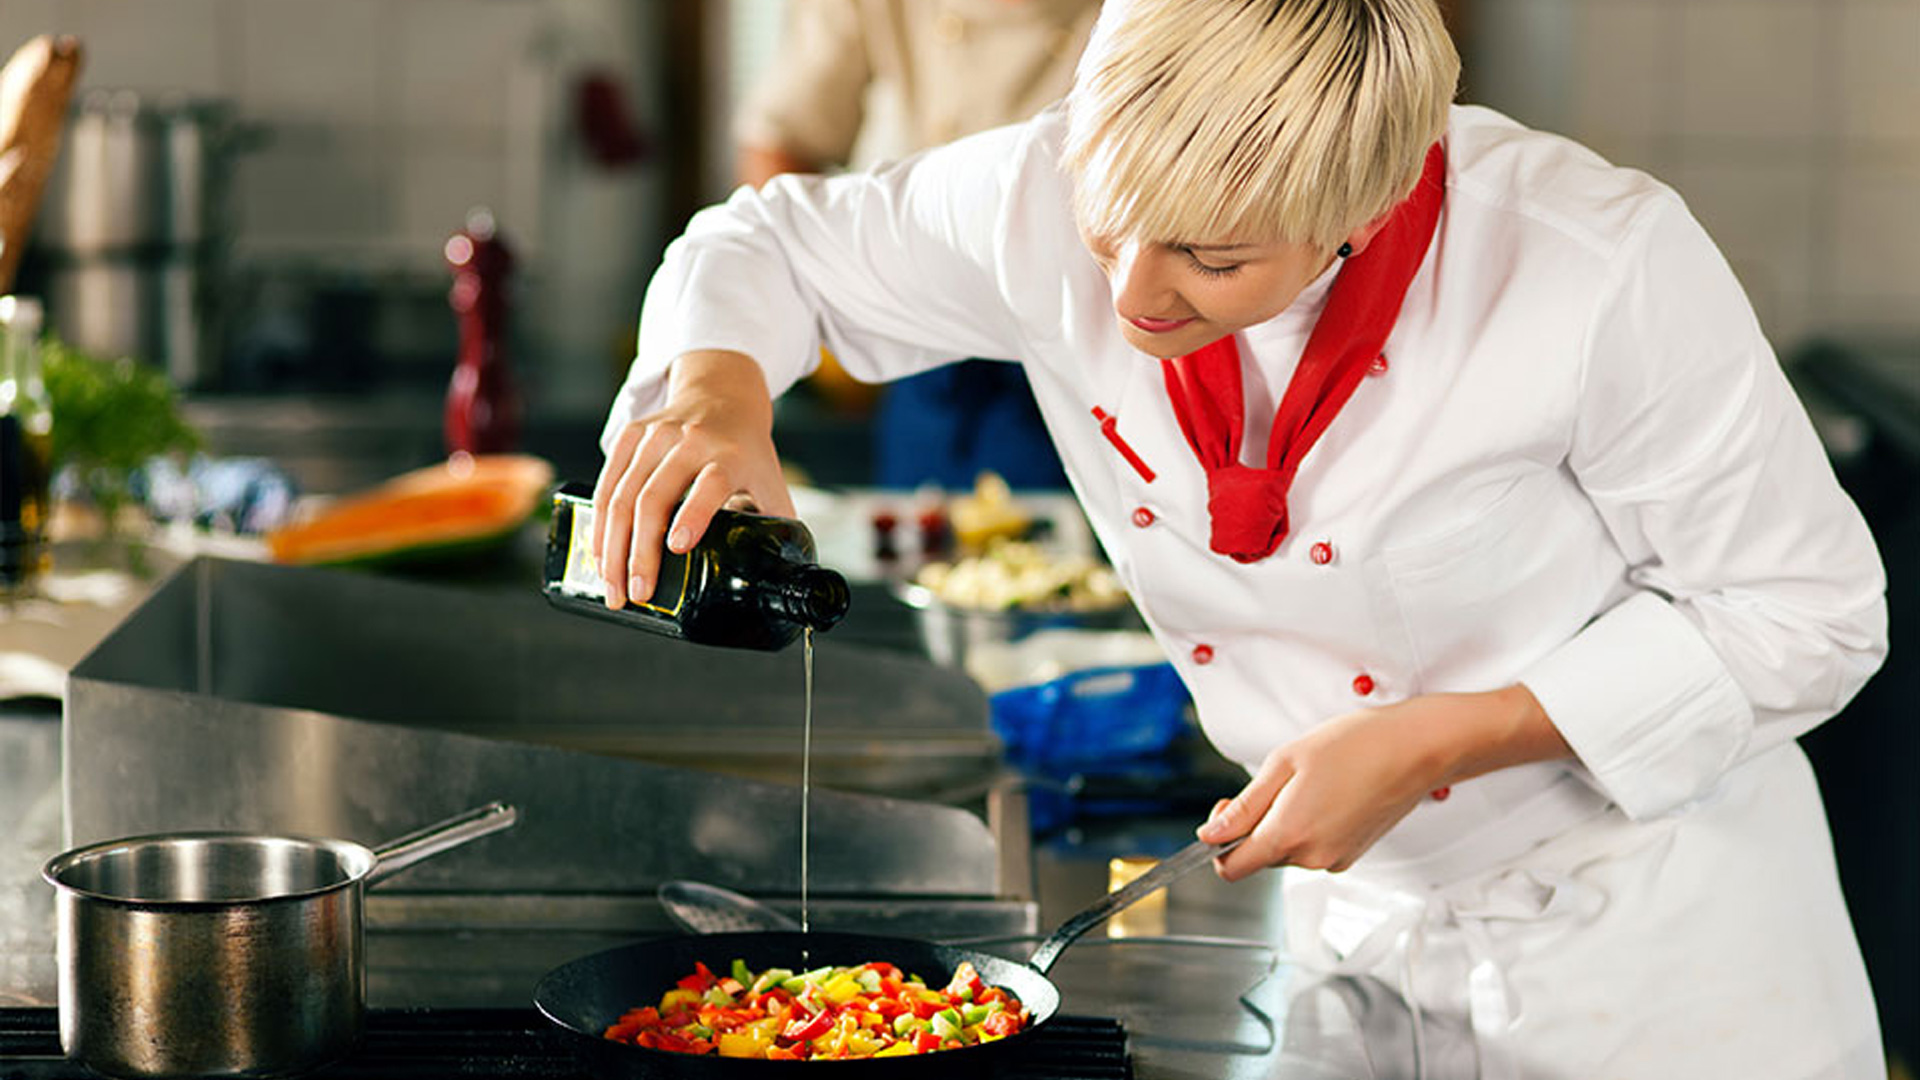 Woman chef pouring olive oil into a skillet of pepper on a stove